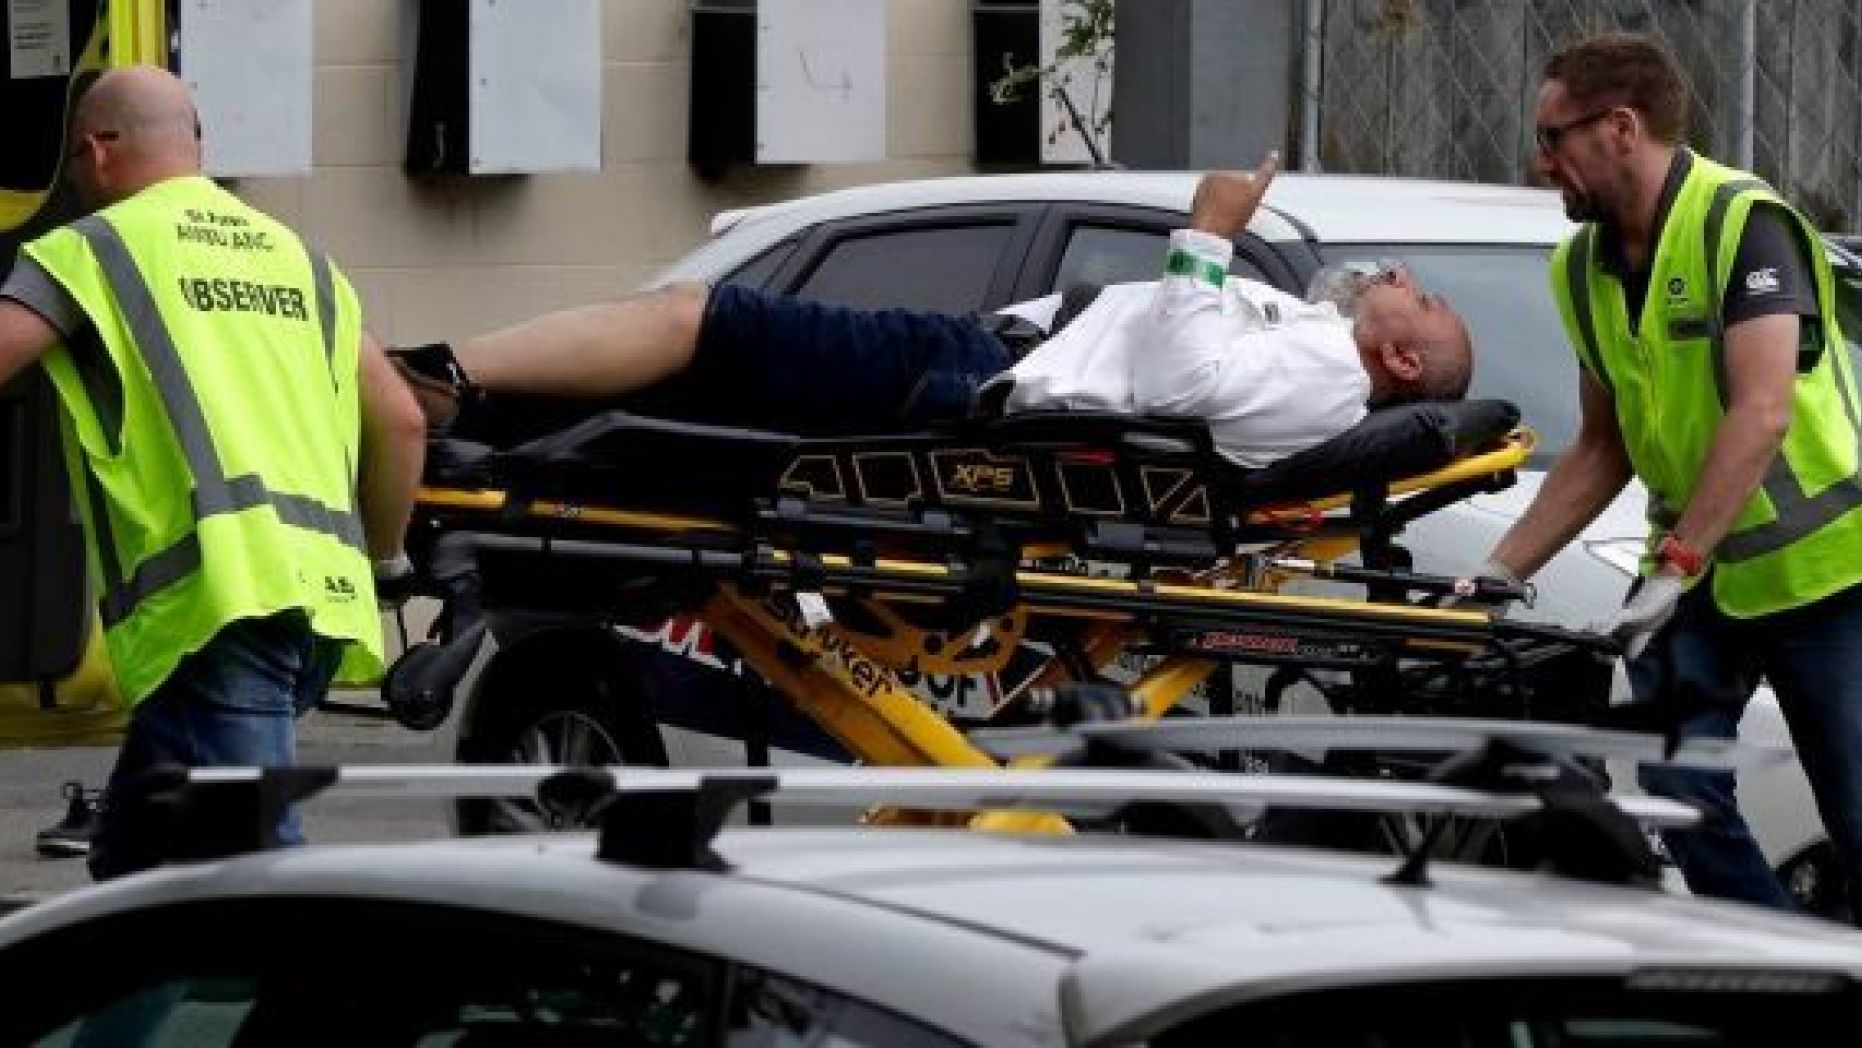 Ambulance staff take a man from outside a mosque in central Christchurch, New Zealand, Friday, March 15, 2019. A witness says many people have been killed in a mass shooting at a mosque in the New Zealand city of Christchurch.(AP Photo/Mark Baker)